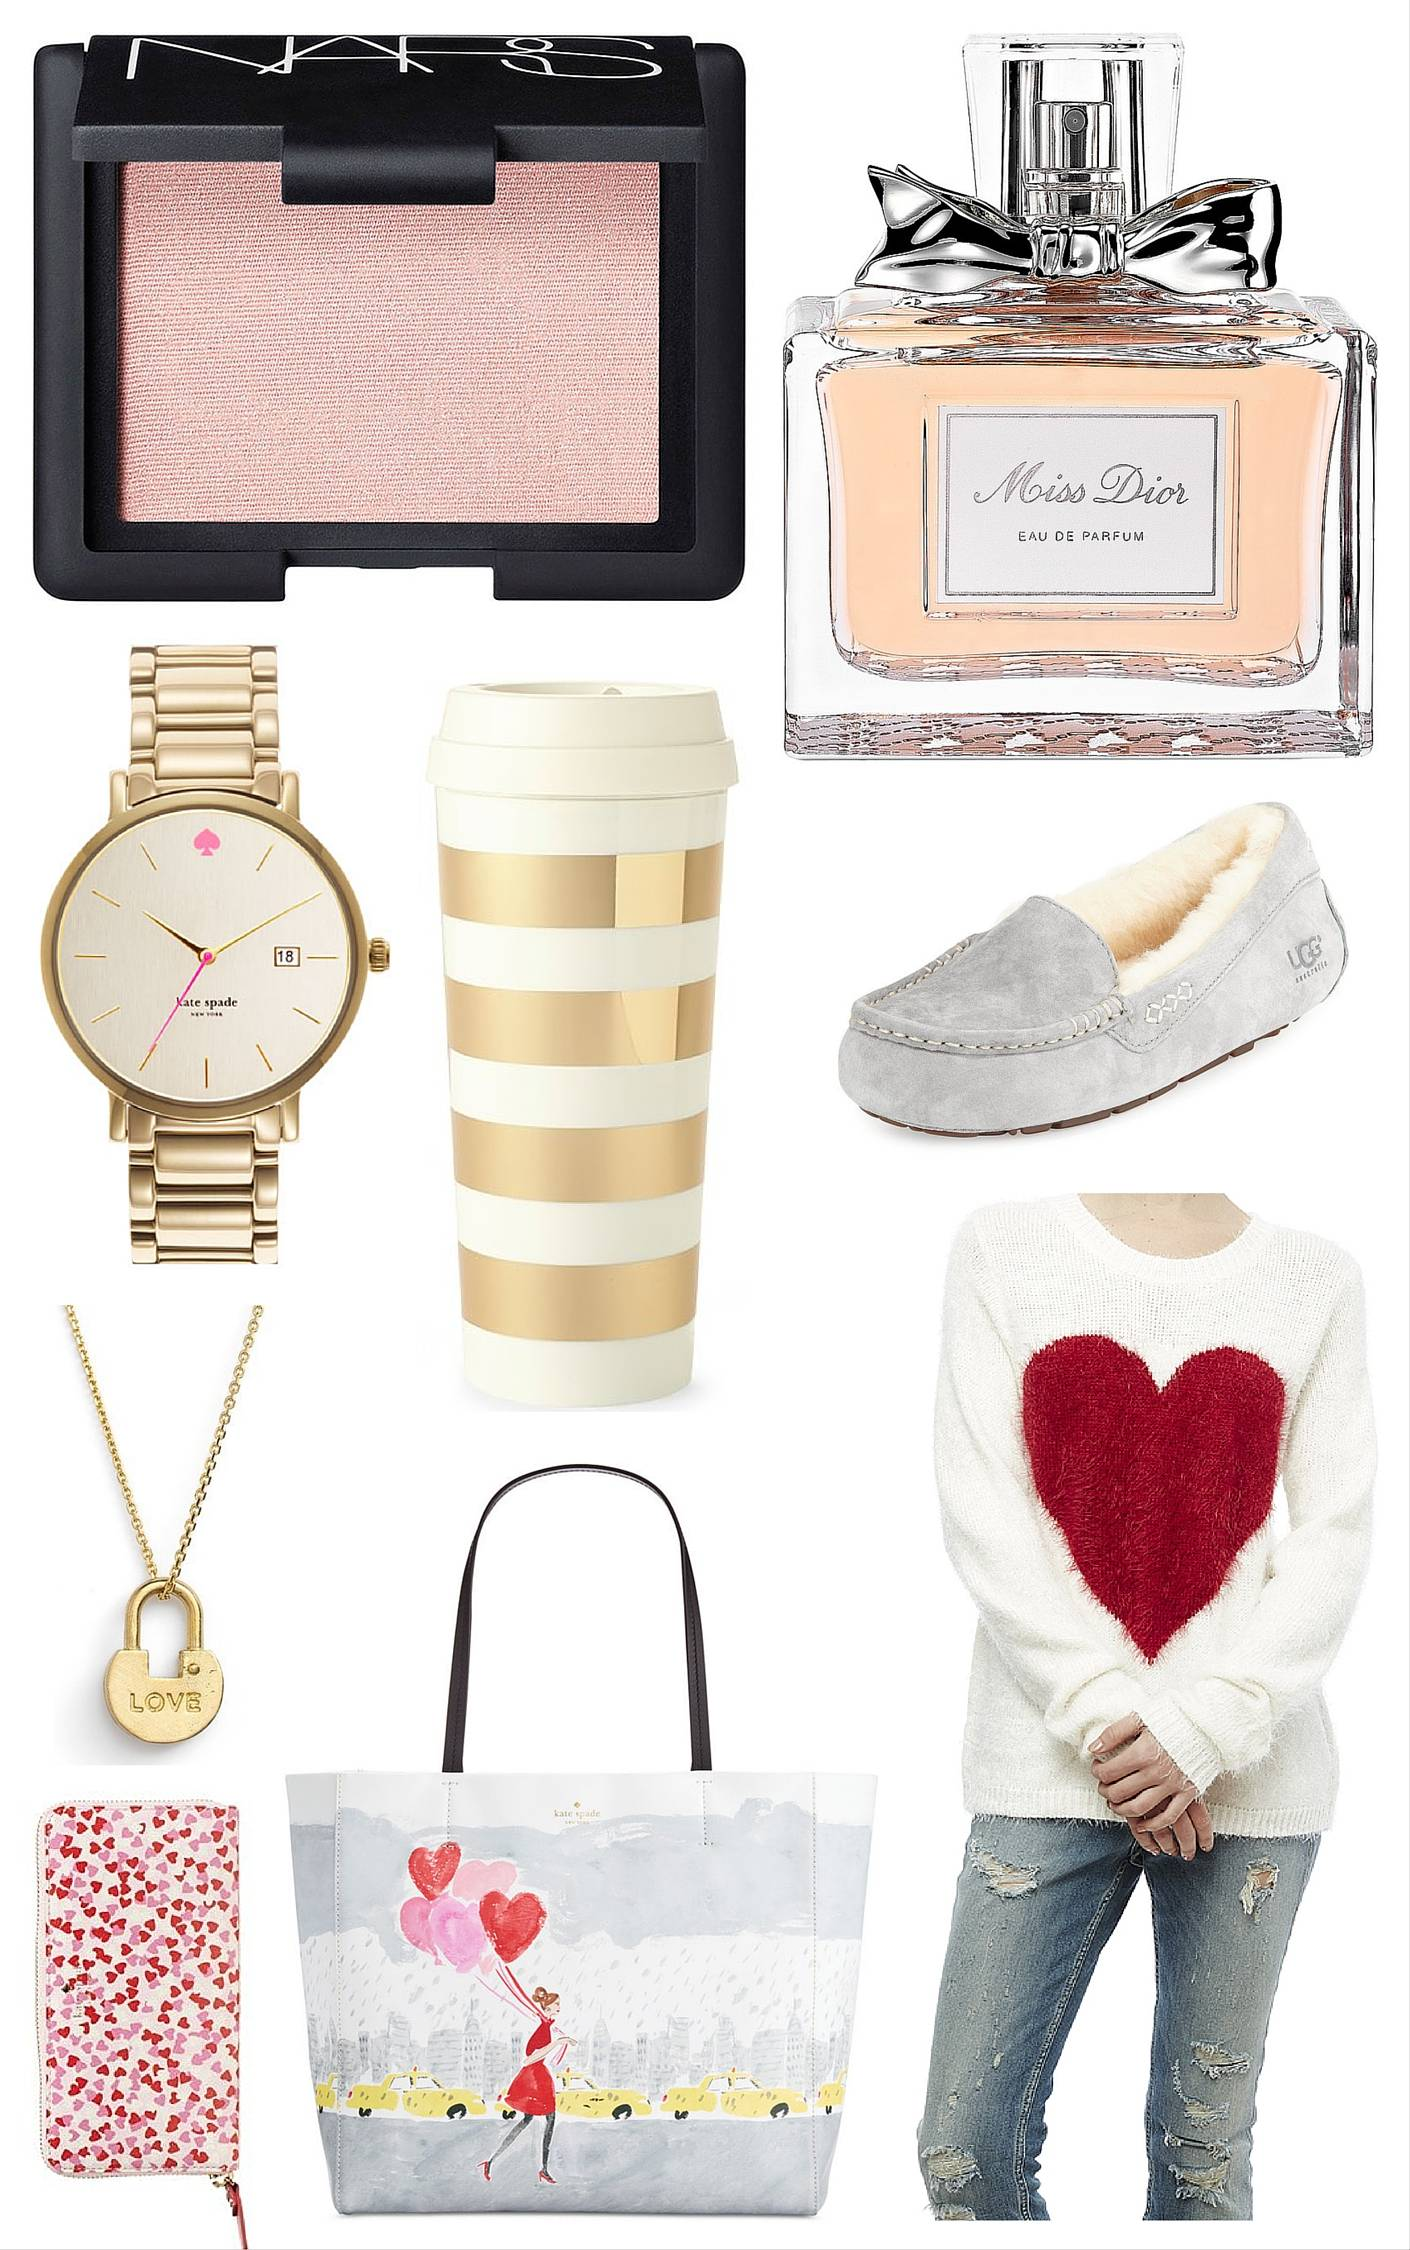 Valentine's Day Gift Guide For Her - Pearls and Polkadots